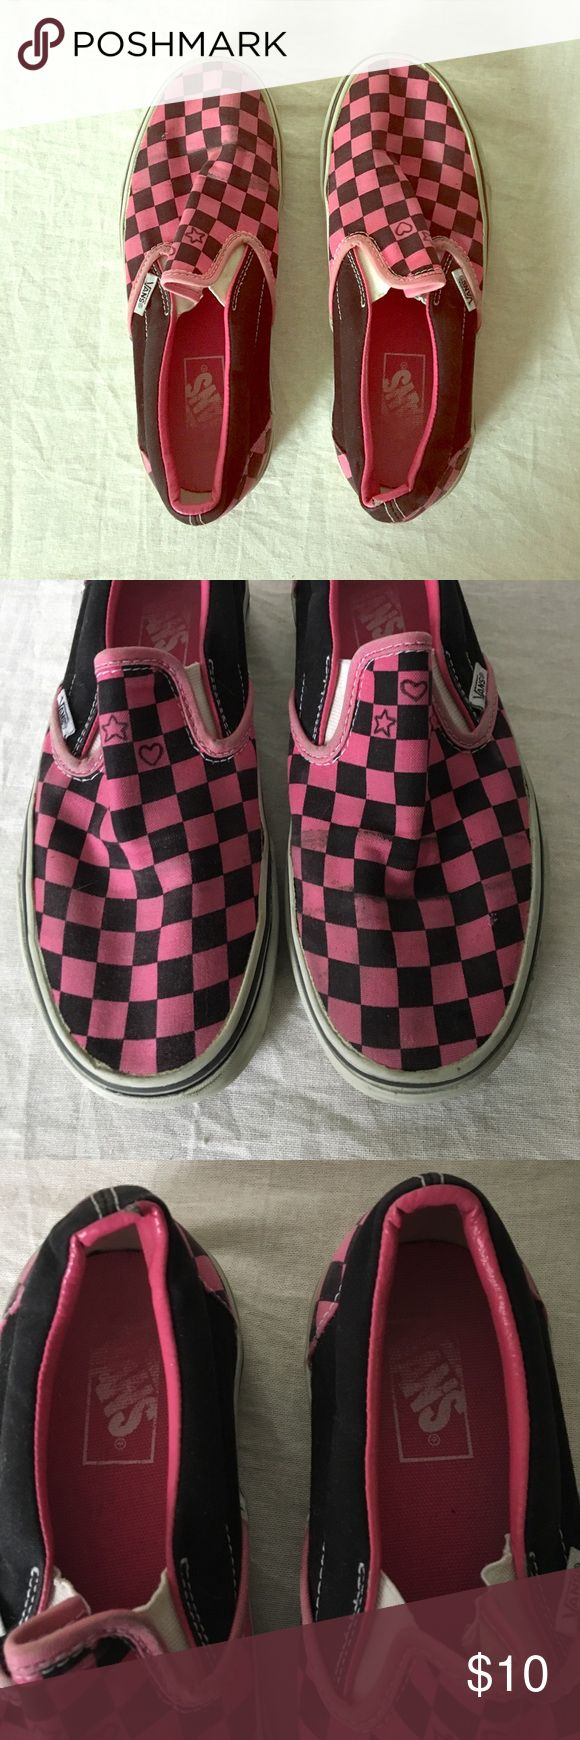 Vintage checkered Vans Cool grunge-inspired Vans. In good condition with wear consistent with their age. Could probably be cleaned up a bit if one so desired: small nick in the fabric of the left shoe (see photos). Shoes are sold AS IS. Vans Shoes Sneakers